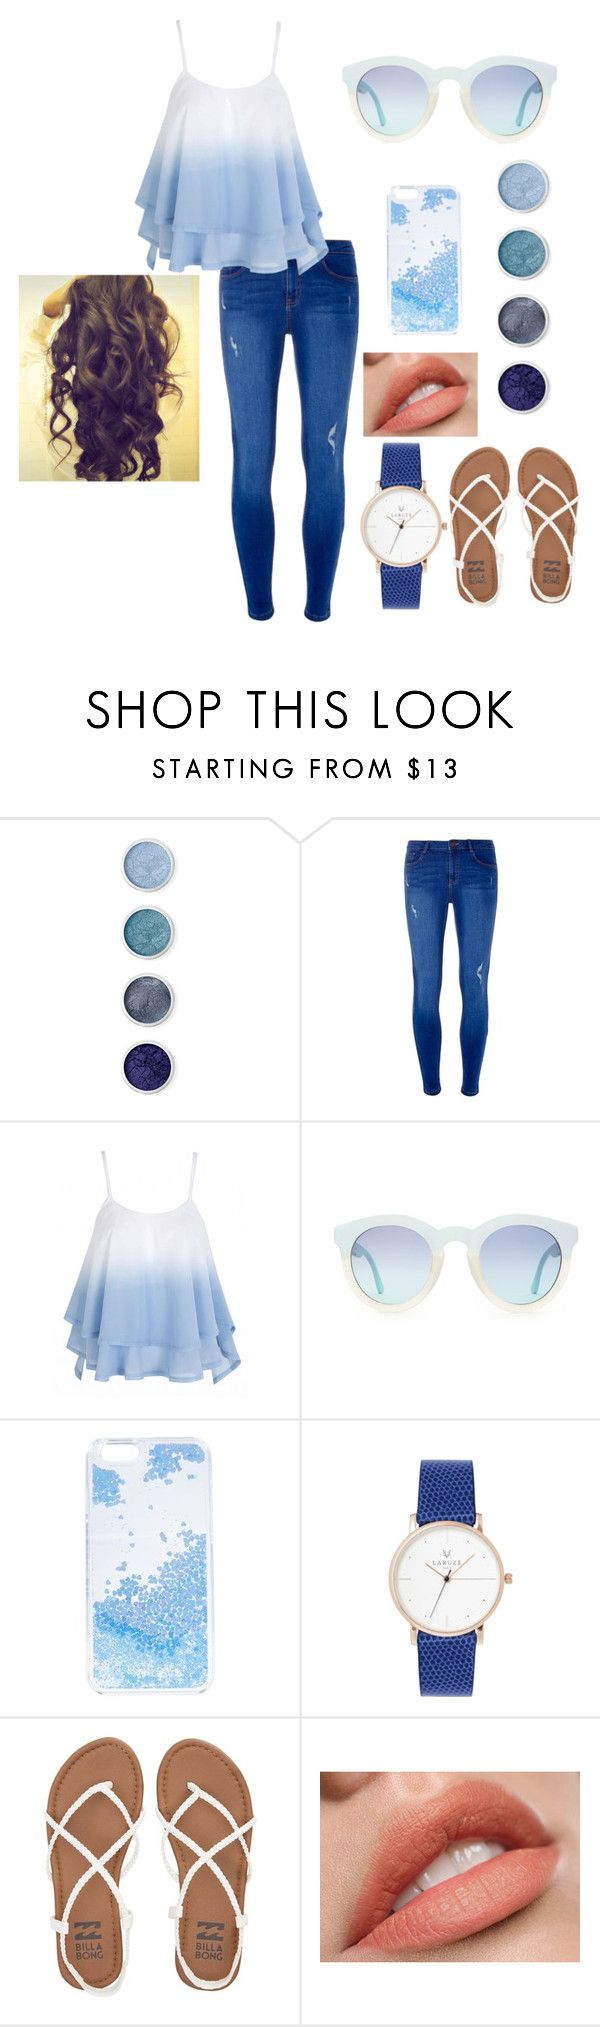 """Drive in"" by ebellows18 on Polyvore featuring Terre Mère, Dorothy Perkins, Skinnydip and Billabong"